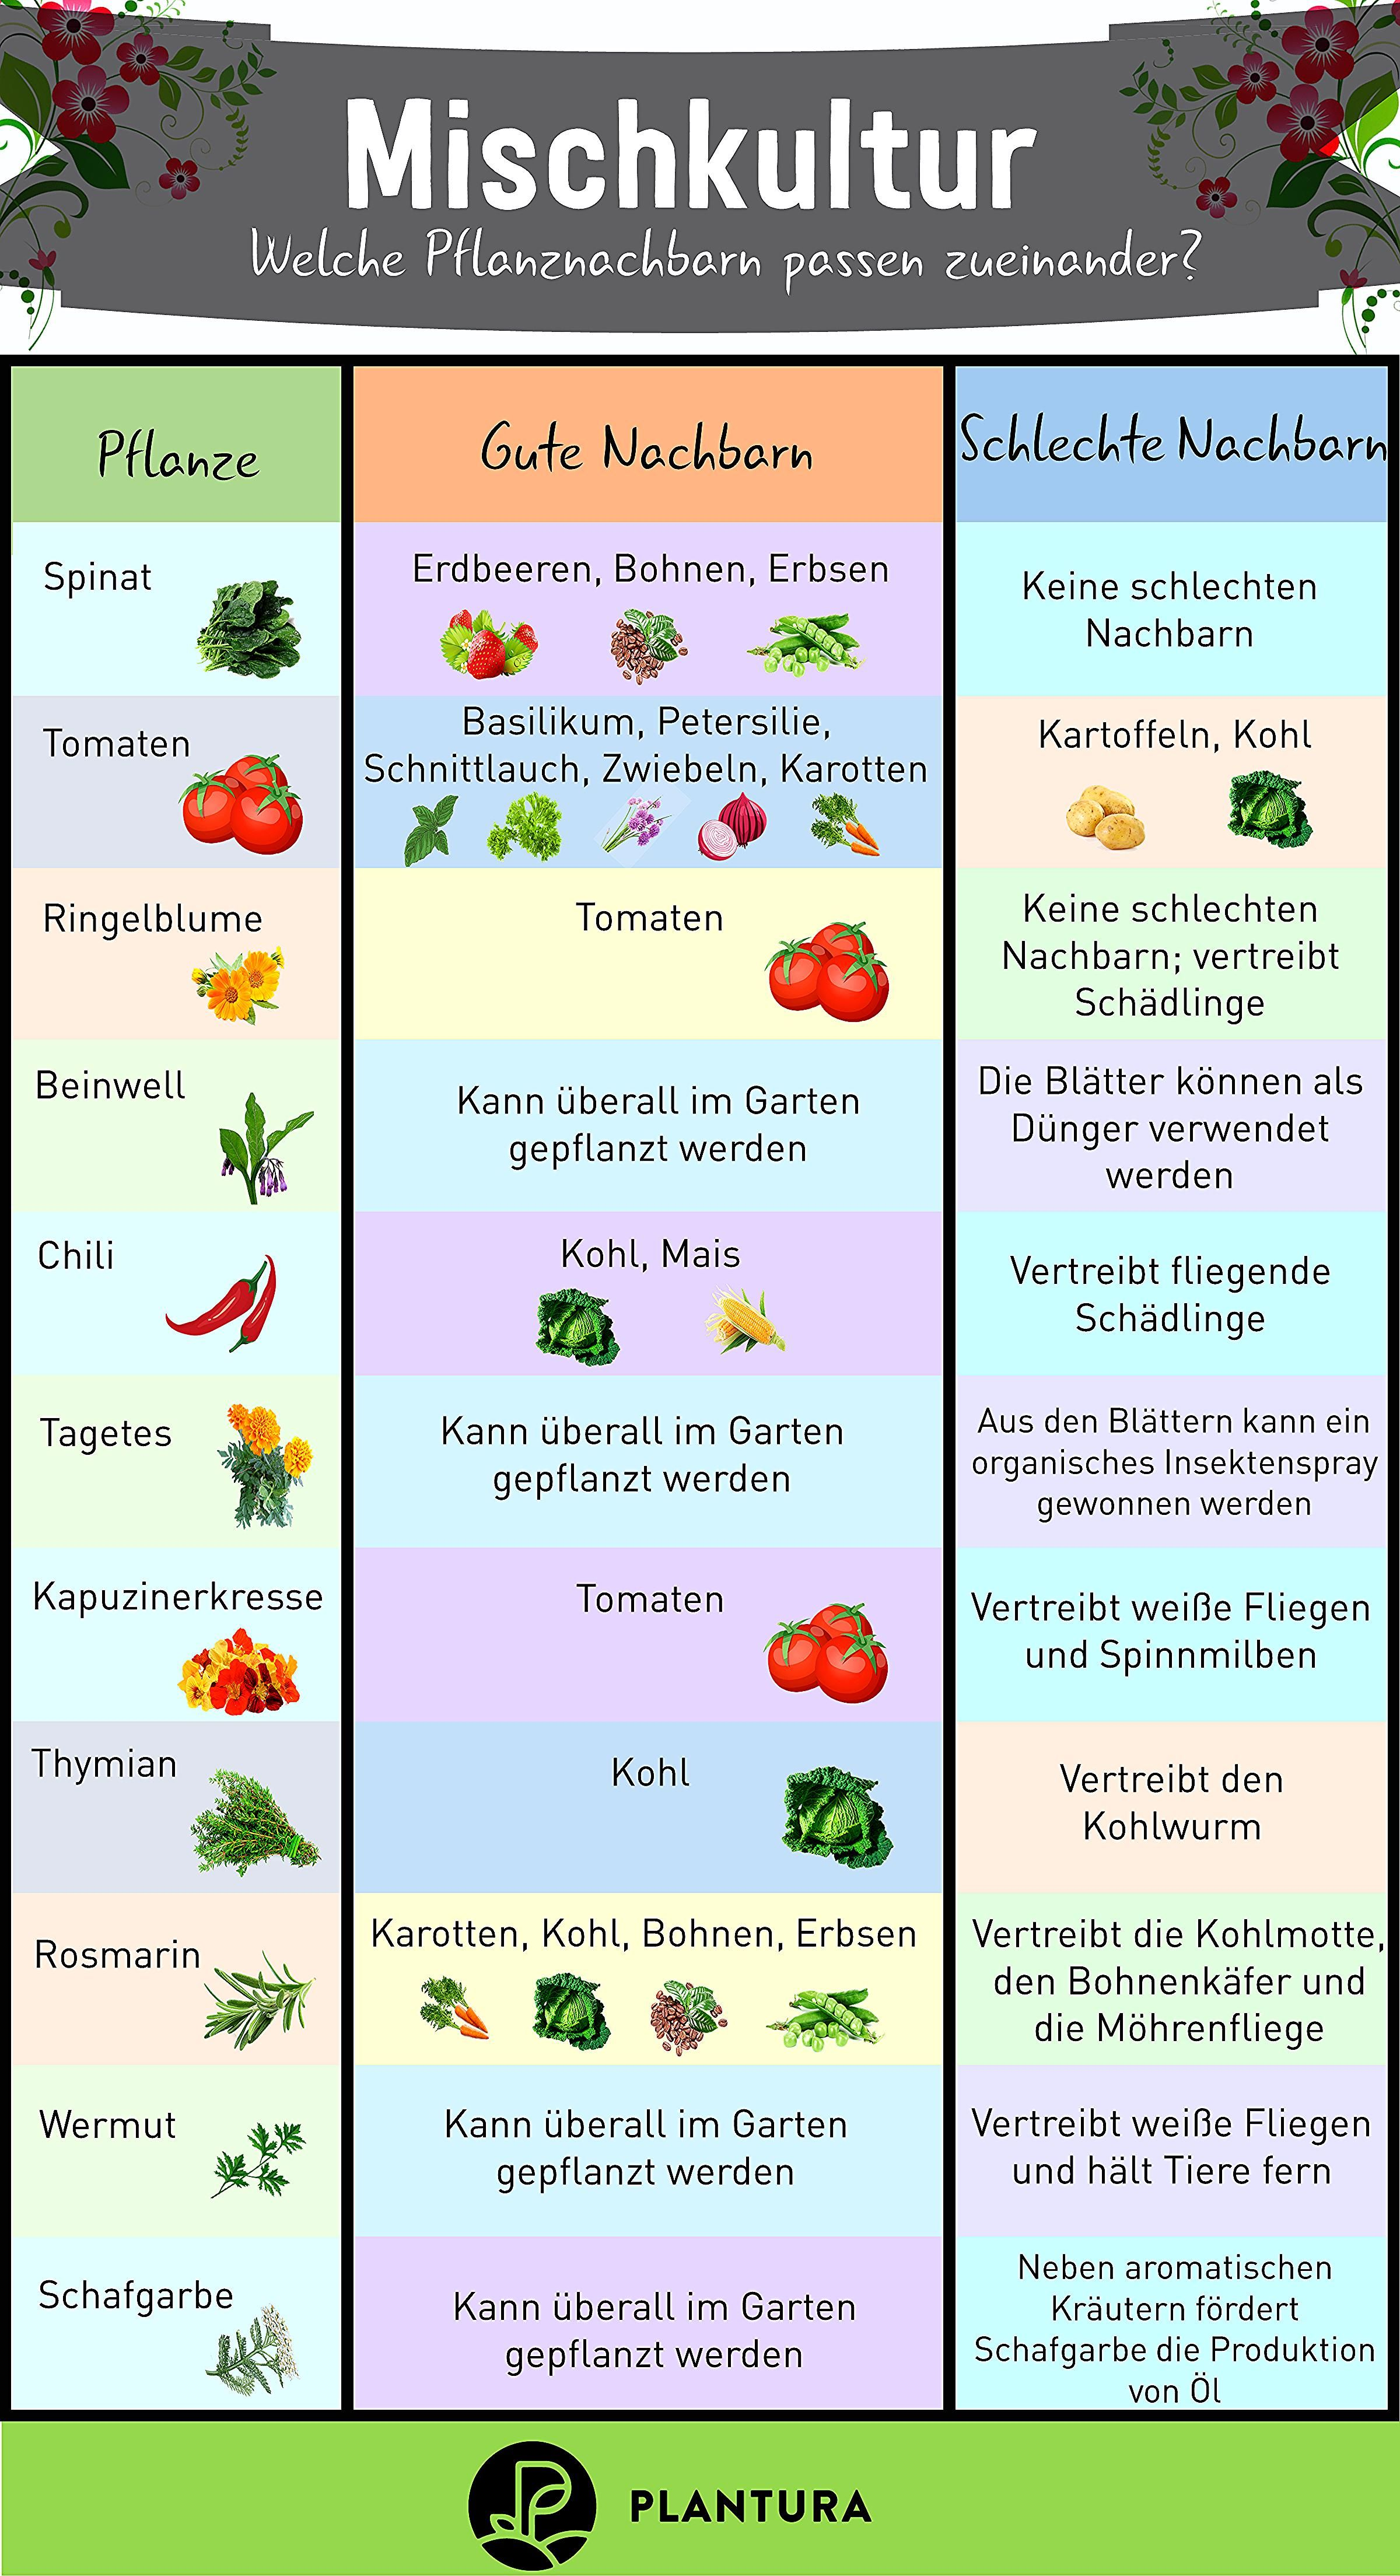 Photo of Mixed culture: which plants fit together? Not every plant is compatible …